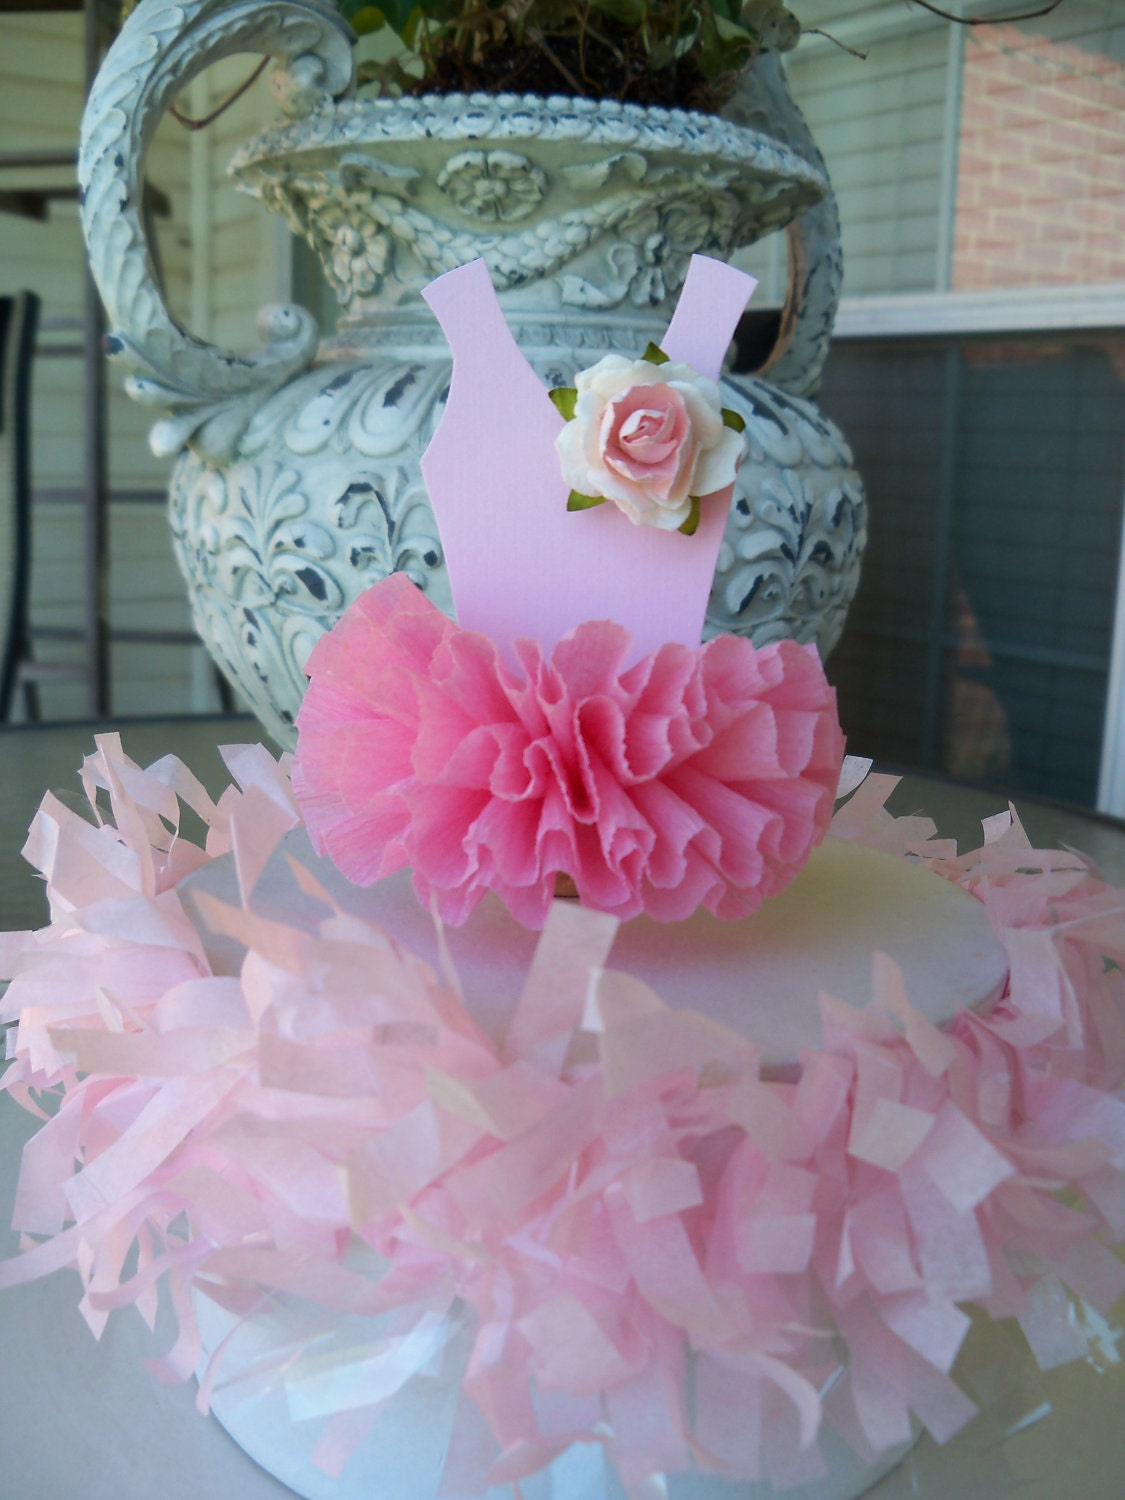 Cake Toppers Birthday Etsy : Ballerina Tutu Cake Topper for Birthday Party by JeanKnee ...